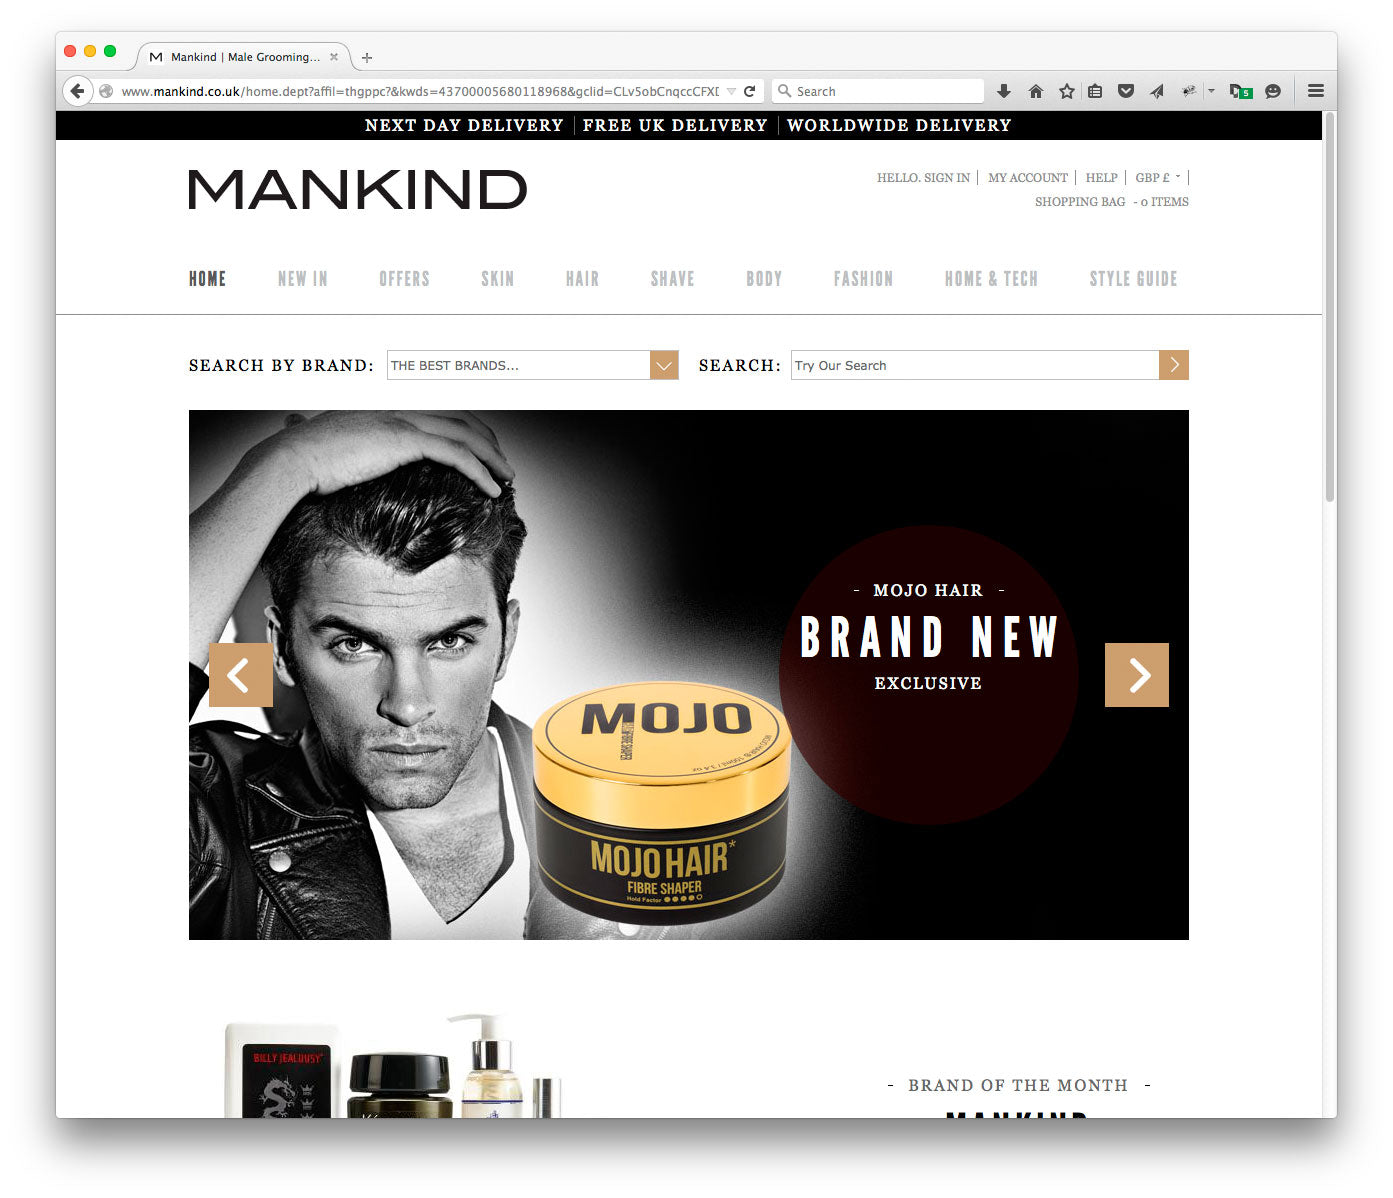 5 Star Reviews on Mankind.co.uk